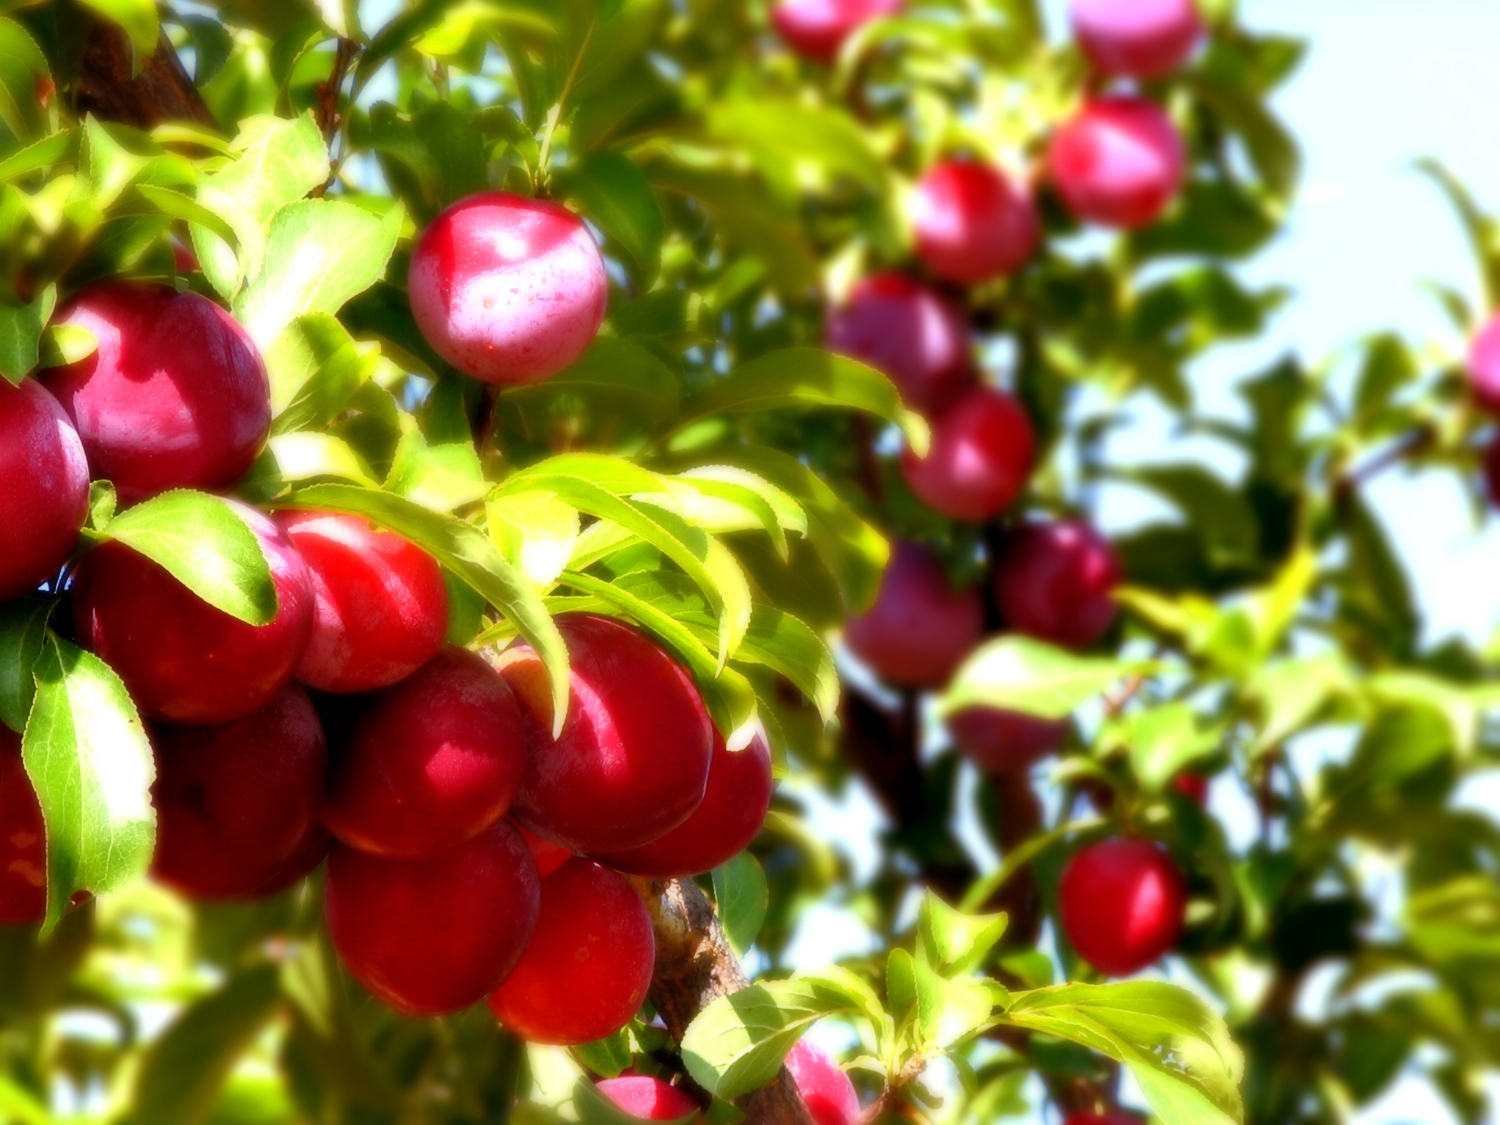 Santa Rosa plums are a special variety of plums that we grow. They're a real treat in the summer.